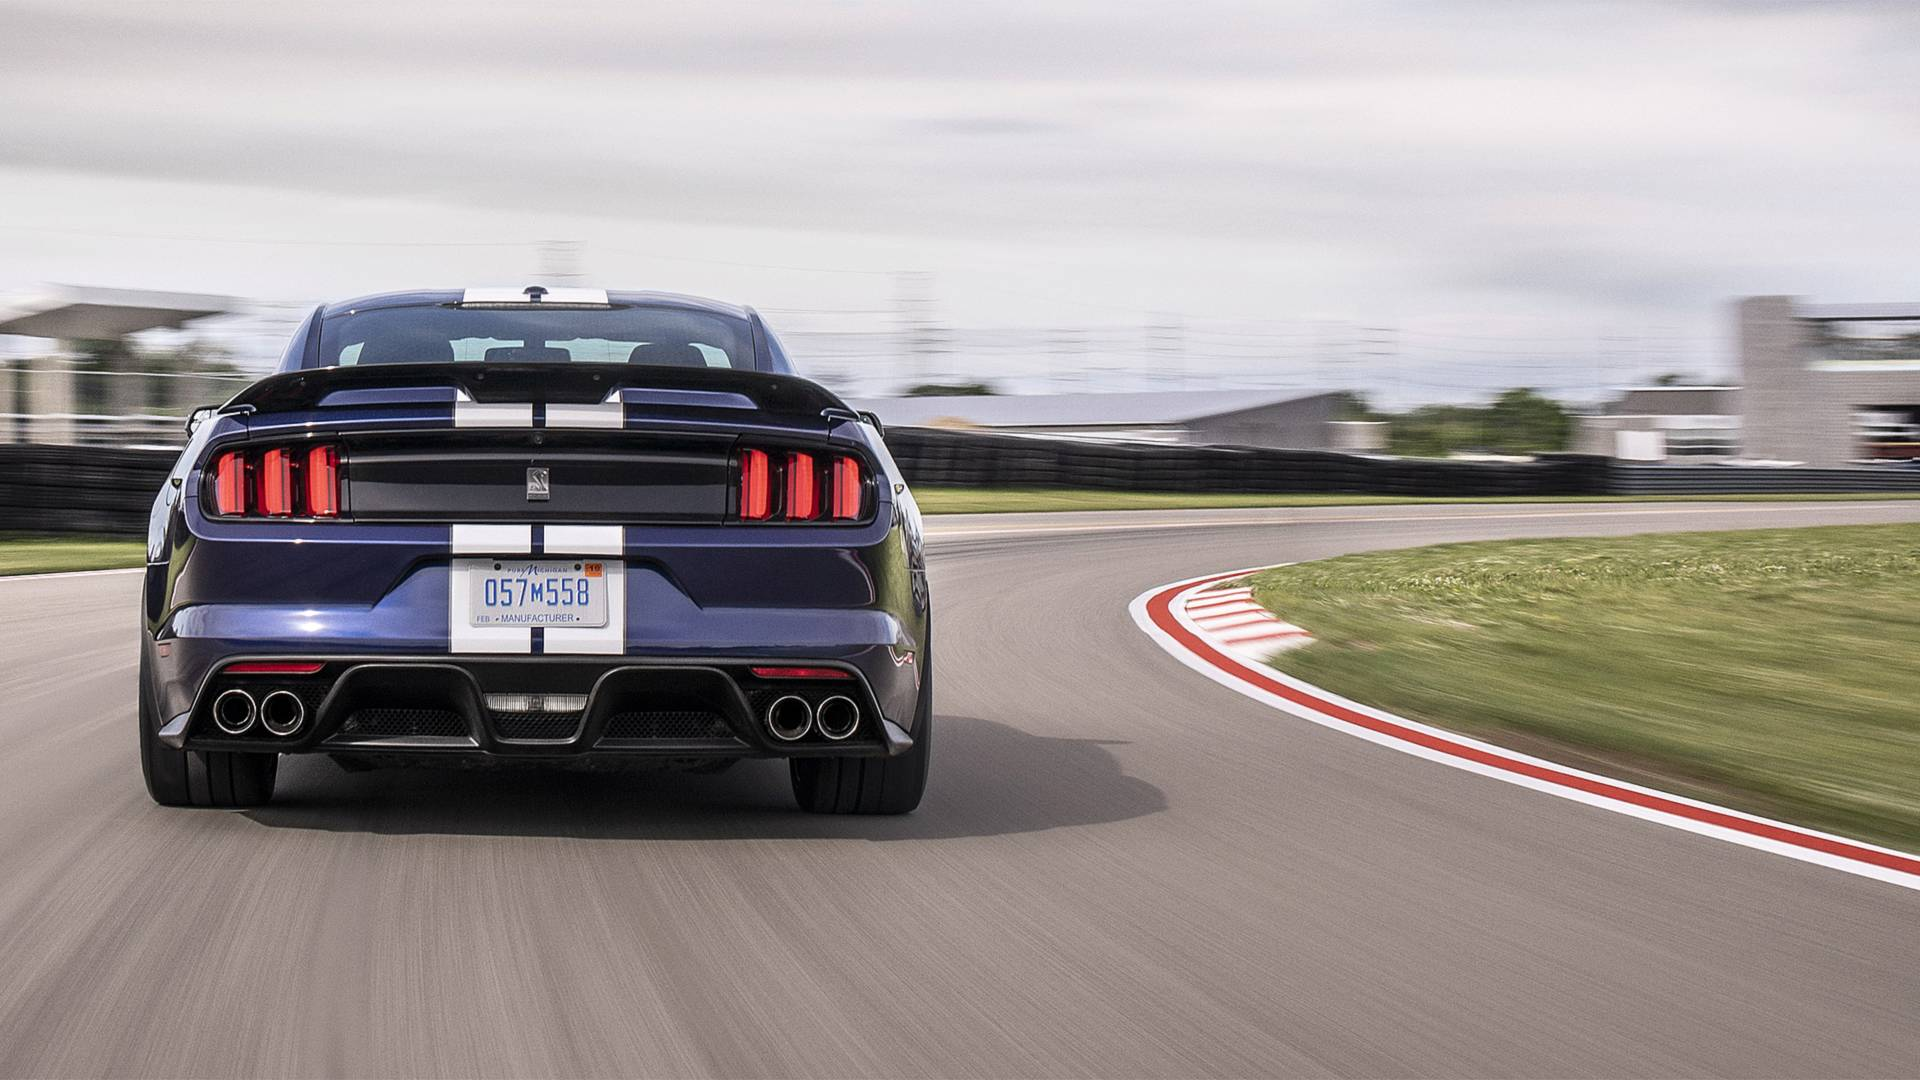 2019-ford-mustang-shelby-gt350 (5).jpg